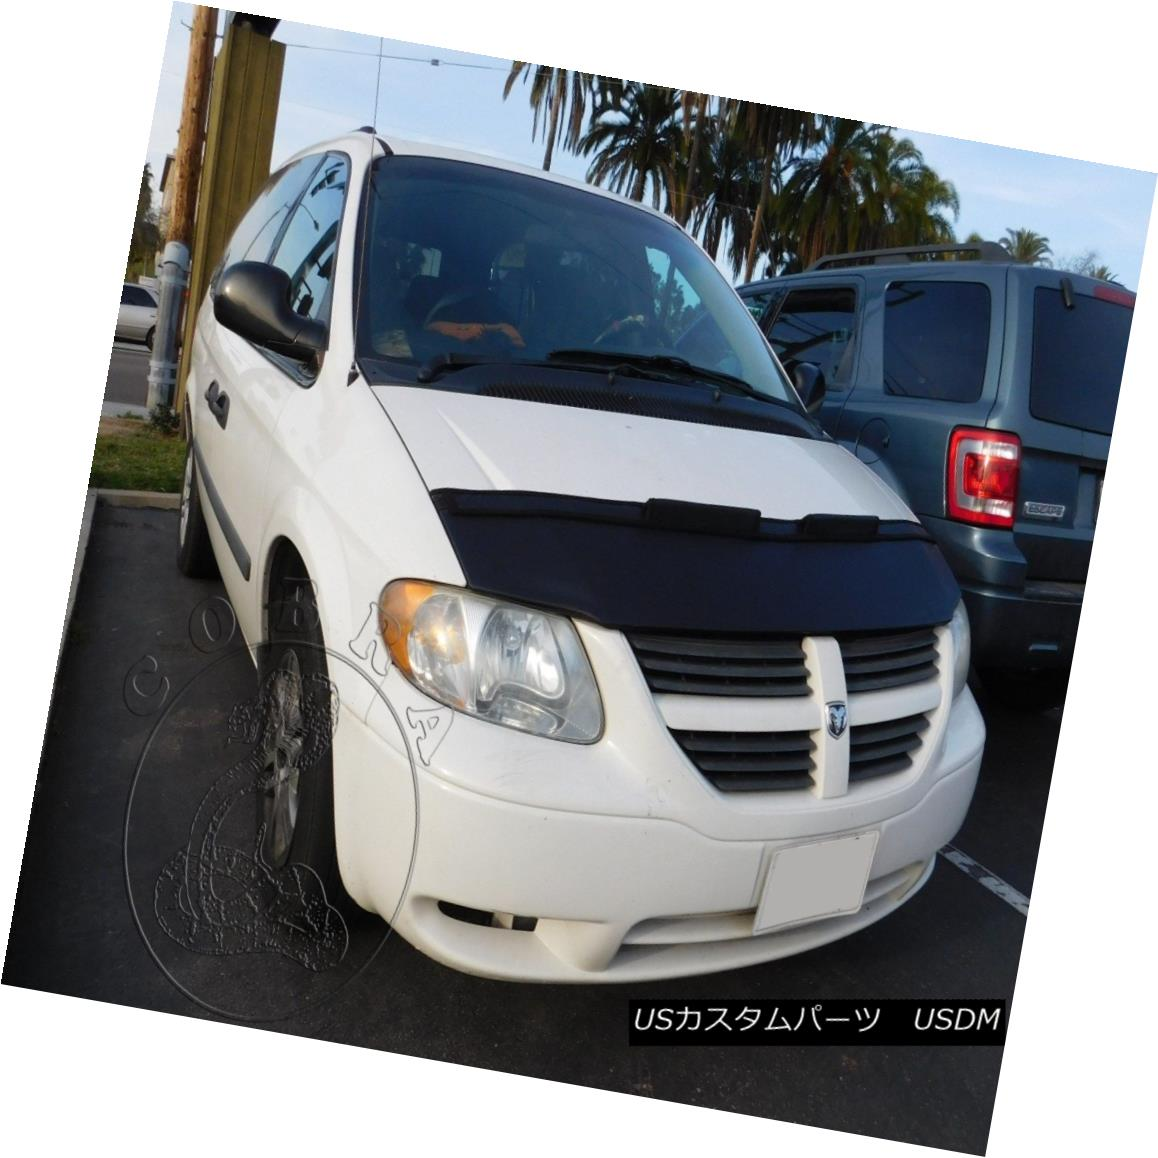 フルブラ ノーズブラ Car Hood Mask Bonnet Bra Fits DODGE CARAVAN 2001 2002 2003 2004 2005 2006 2007 Car Hood Maskボンネット・ブラ・フィットDODGE CARAVAN 2001 2002 2003 2004 2005 2006 2007